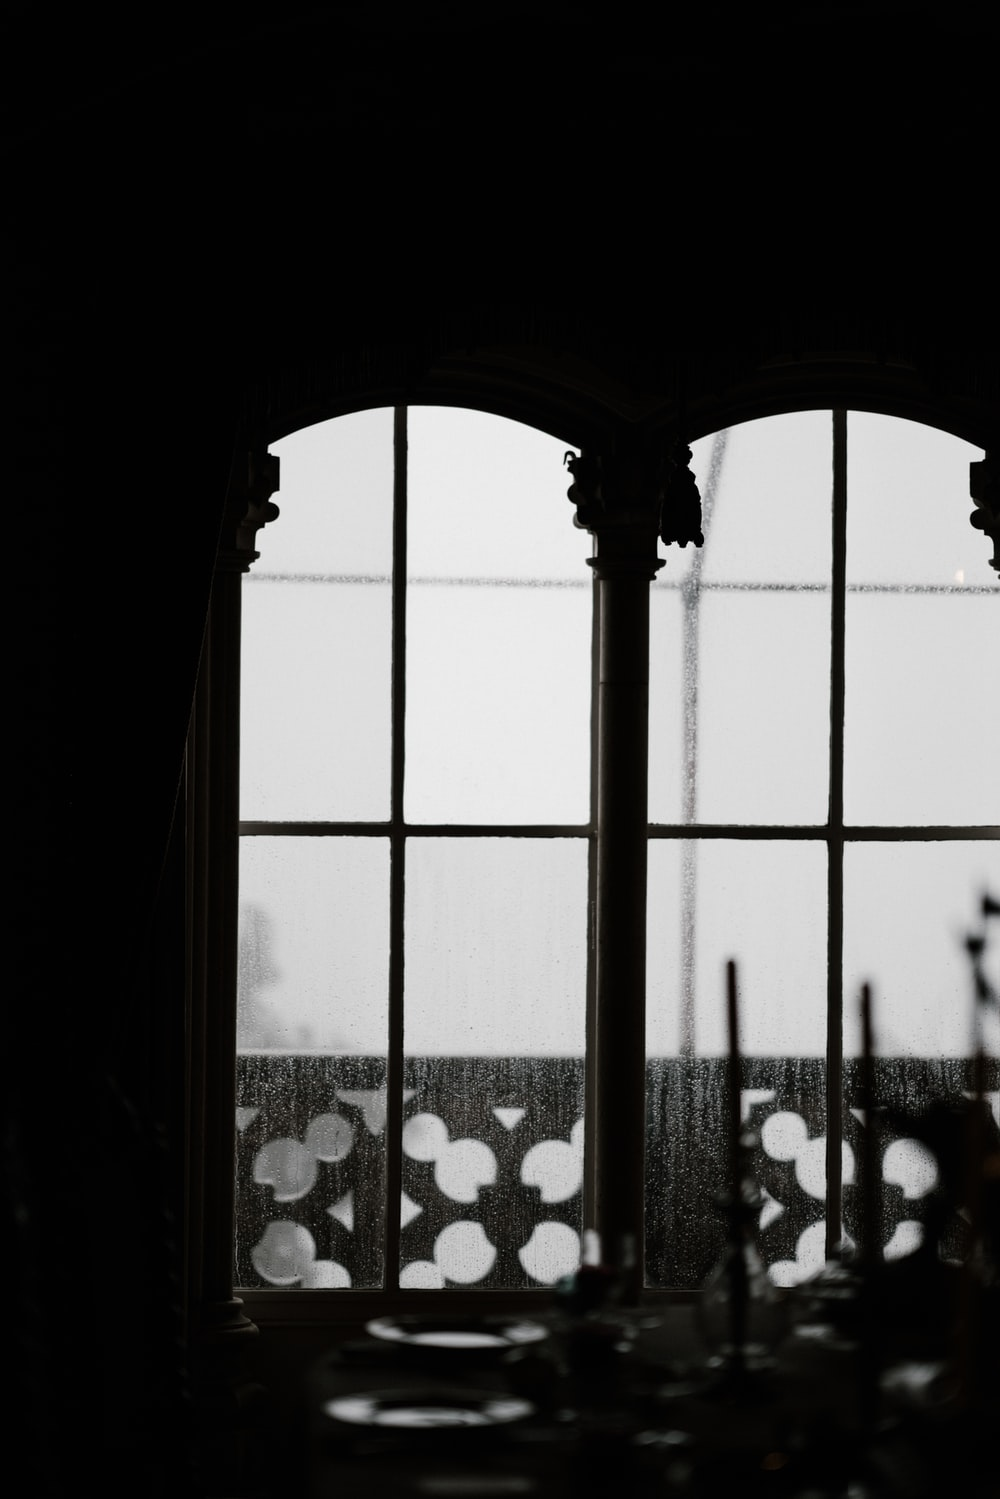 grayscale photo of closed window